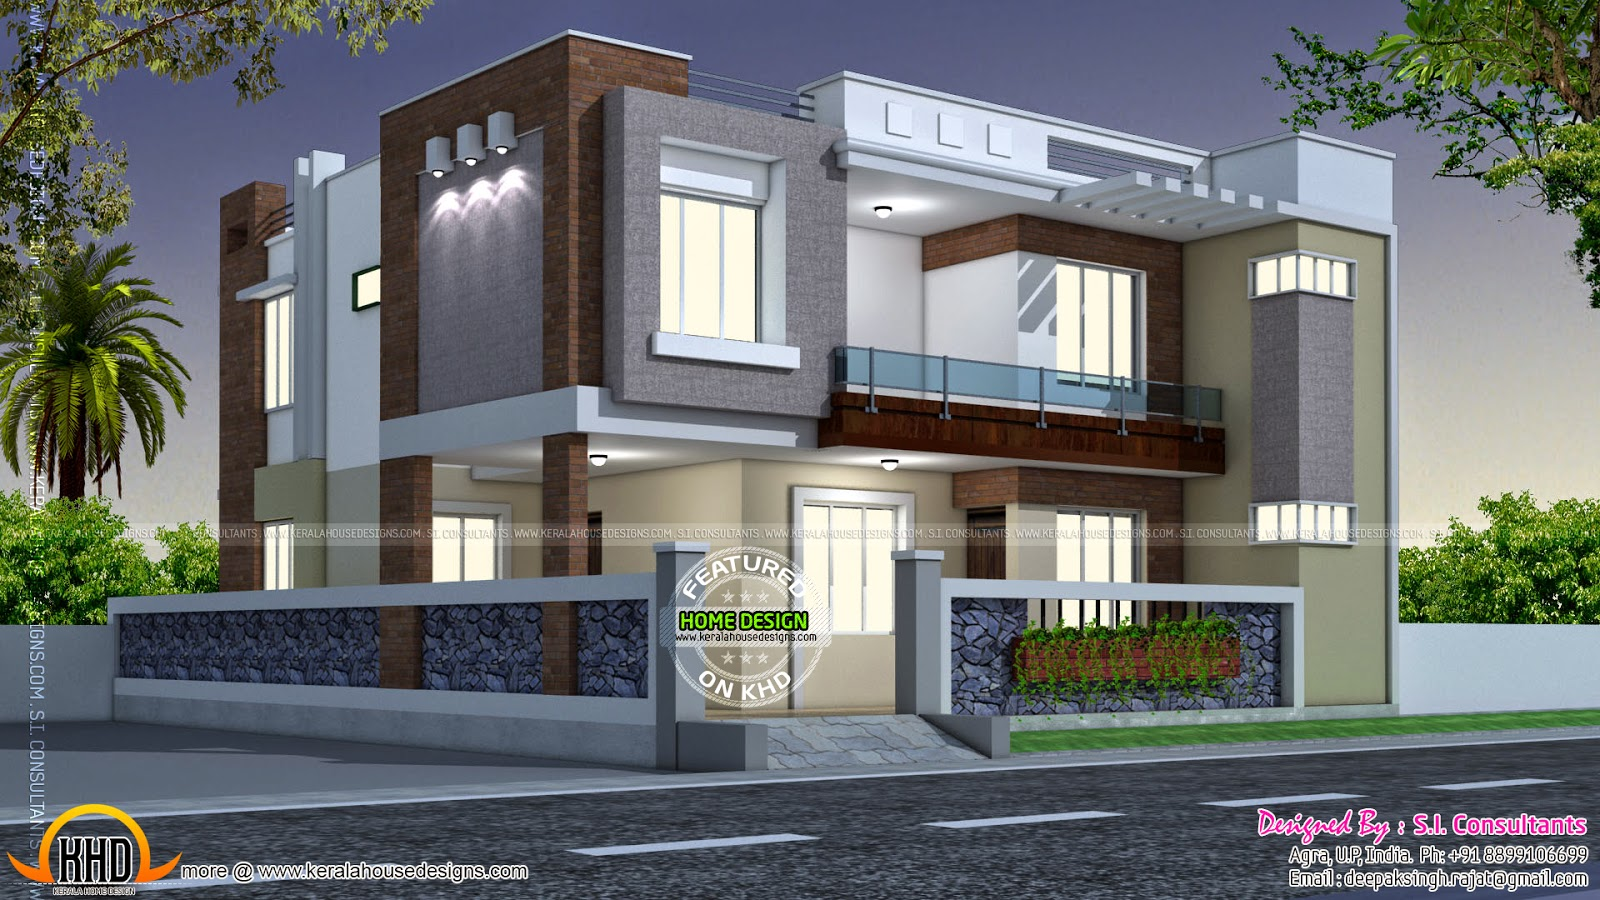 Modern indian home design front view joy studio design Indian modern house